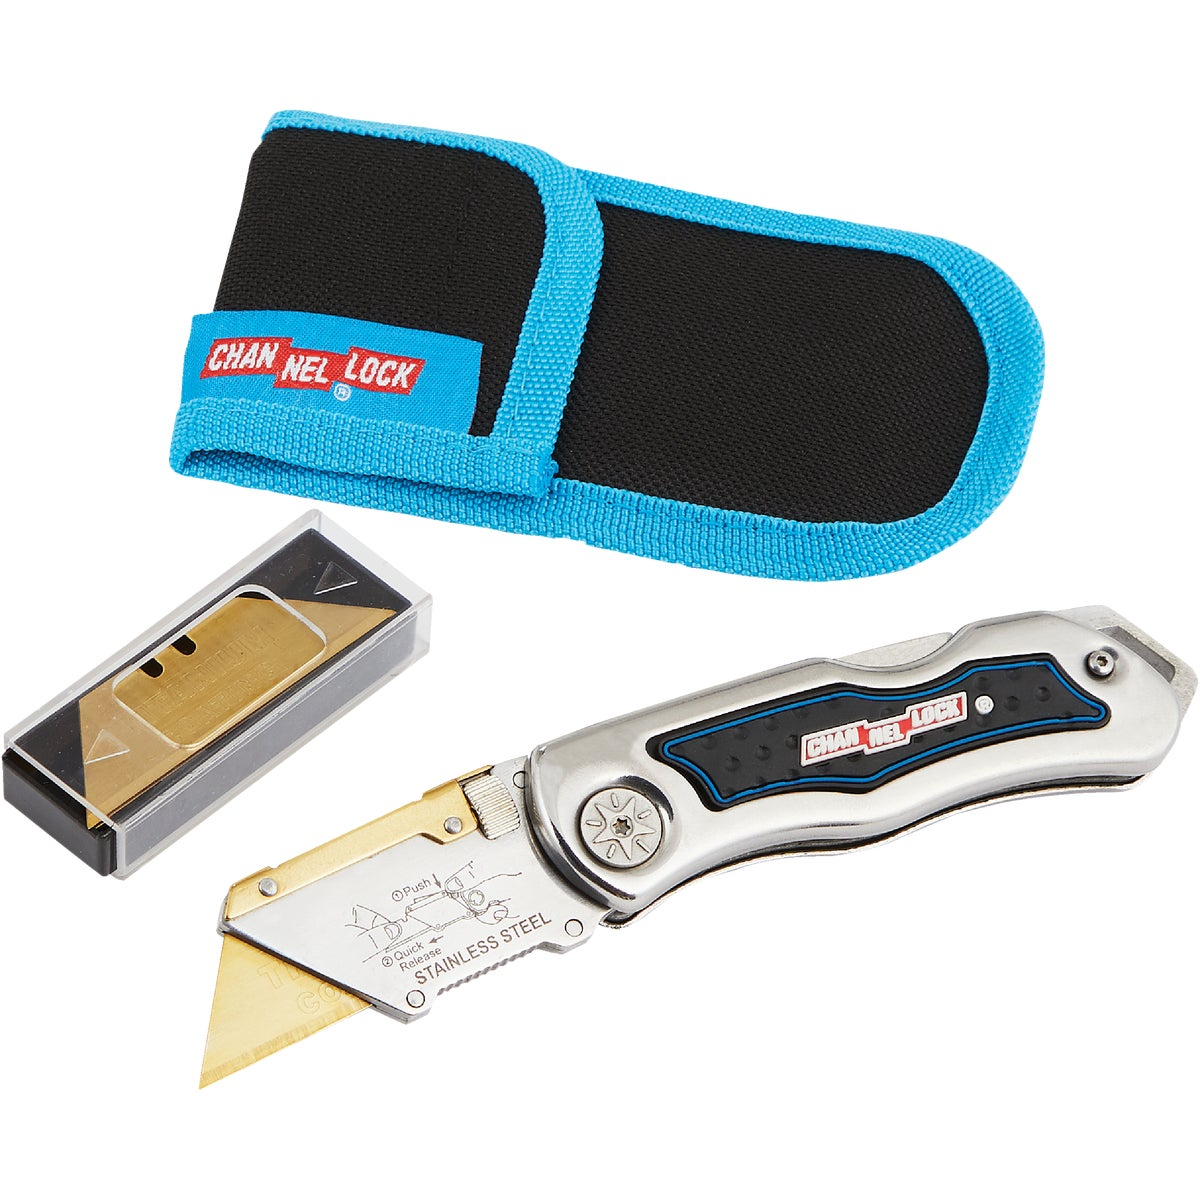 LOCKBACK UTILITY KNIFE - 300112 by Channellock®